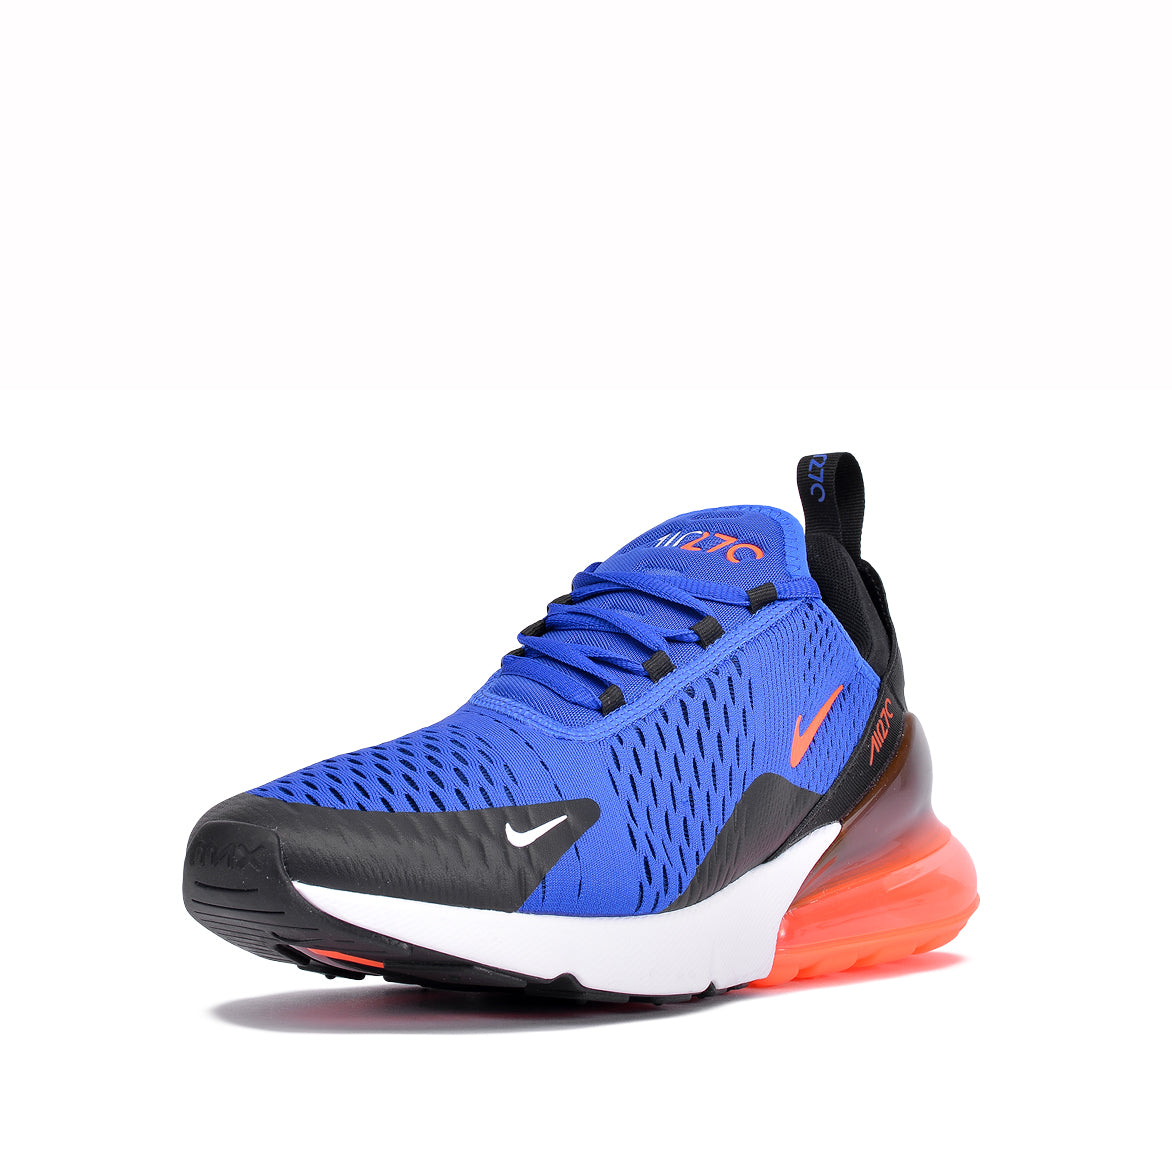 AIR MAX 270 - RACER BLUE / HYPER CRIMSON